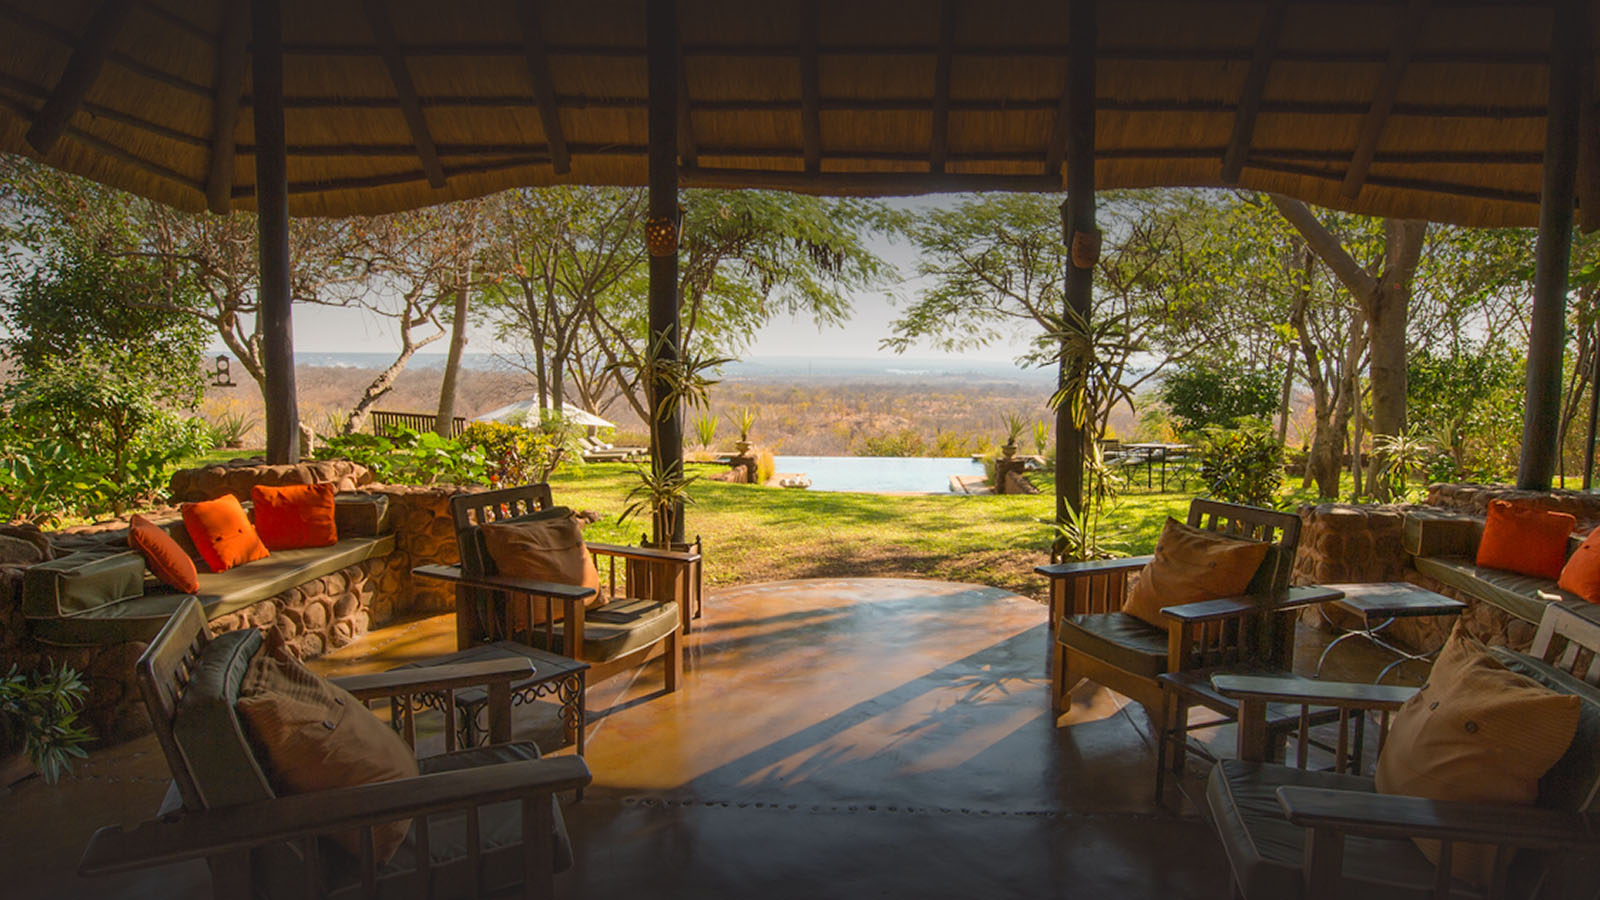 stanley safari lodge livingstone-lodges-zambia-in-style-african-styled-accommodation-outdoor-area